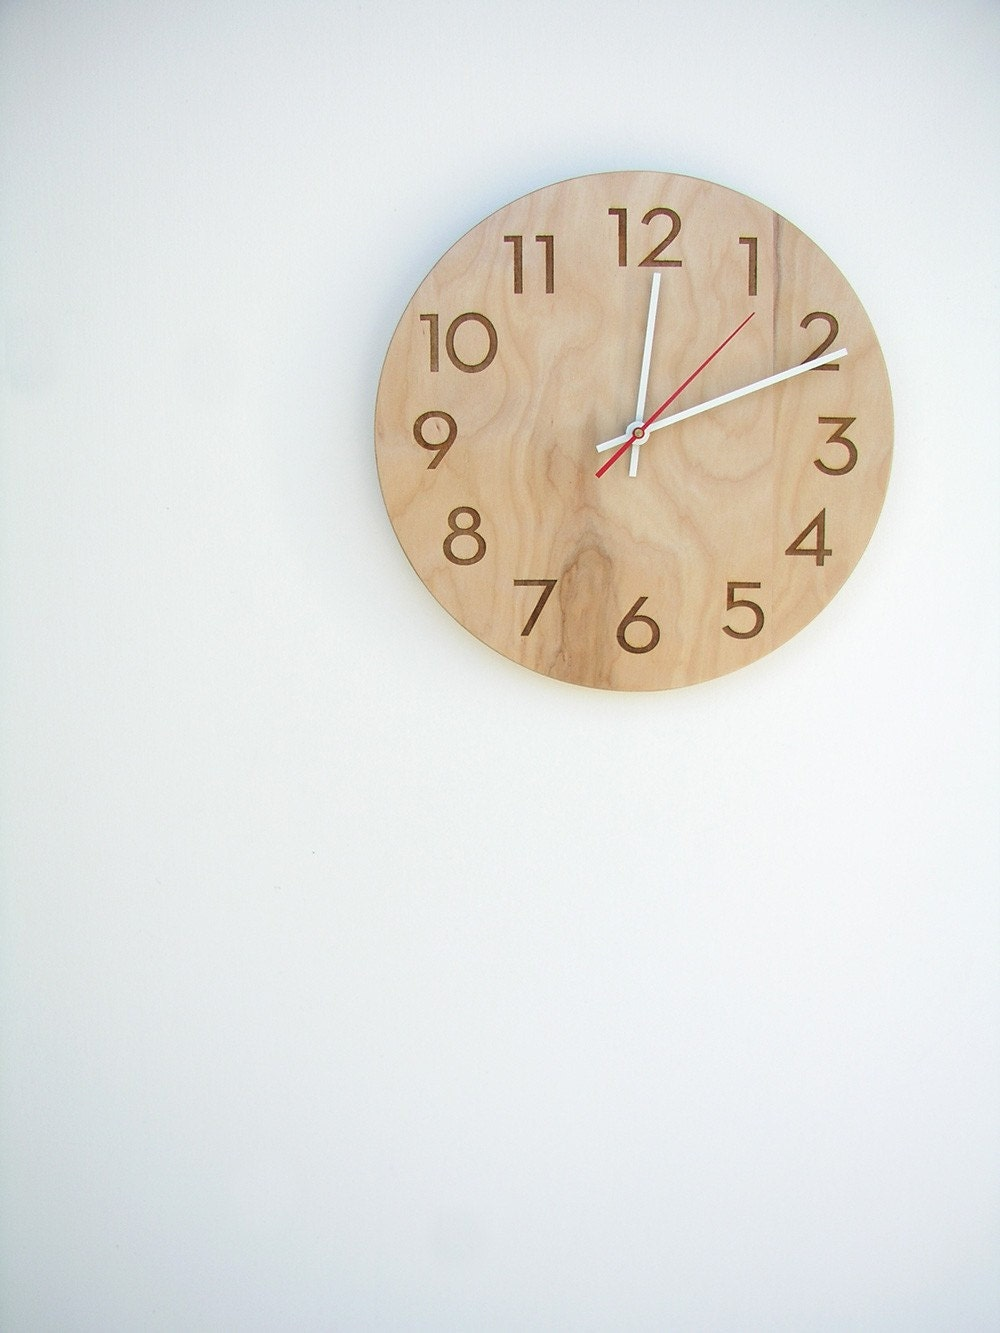 10 inch medium size modern wood wall clock with beautiful natural wood wall clock with beautiful natural woodgrain and classy modern numbers gallery photo gallery photo gallery photo gallery photo gallery photo amipublicfo Image collections